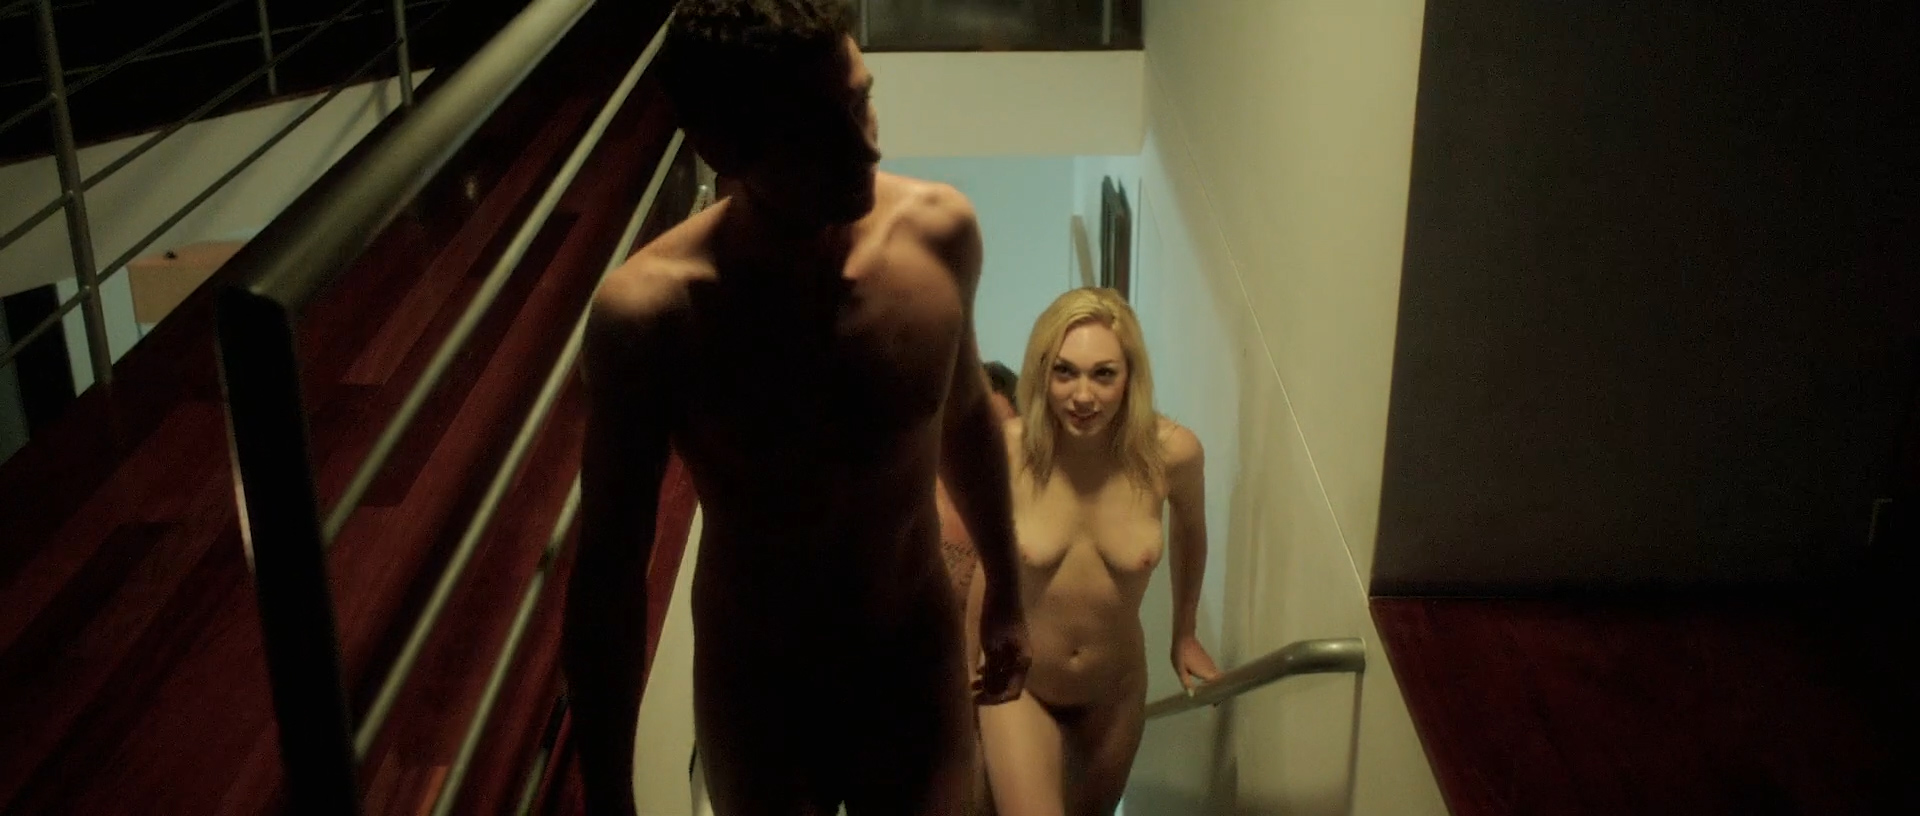 lindsay-lohan-nude-sex-scene-video-girl-aunt-fuck